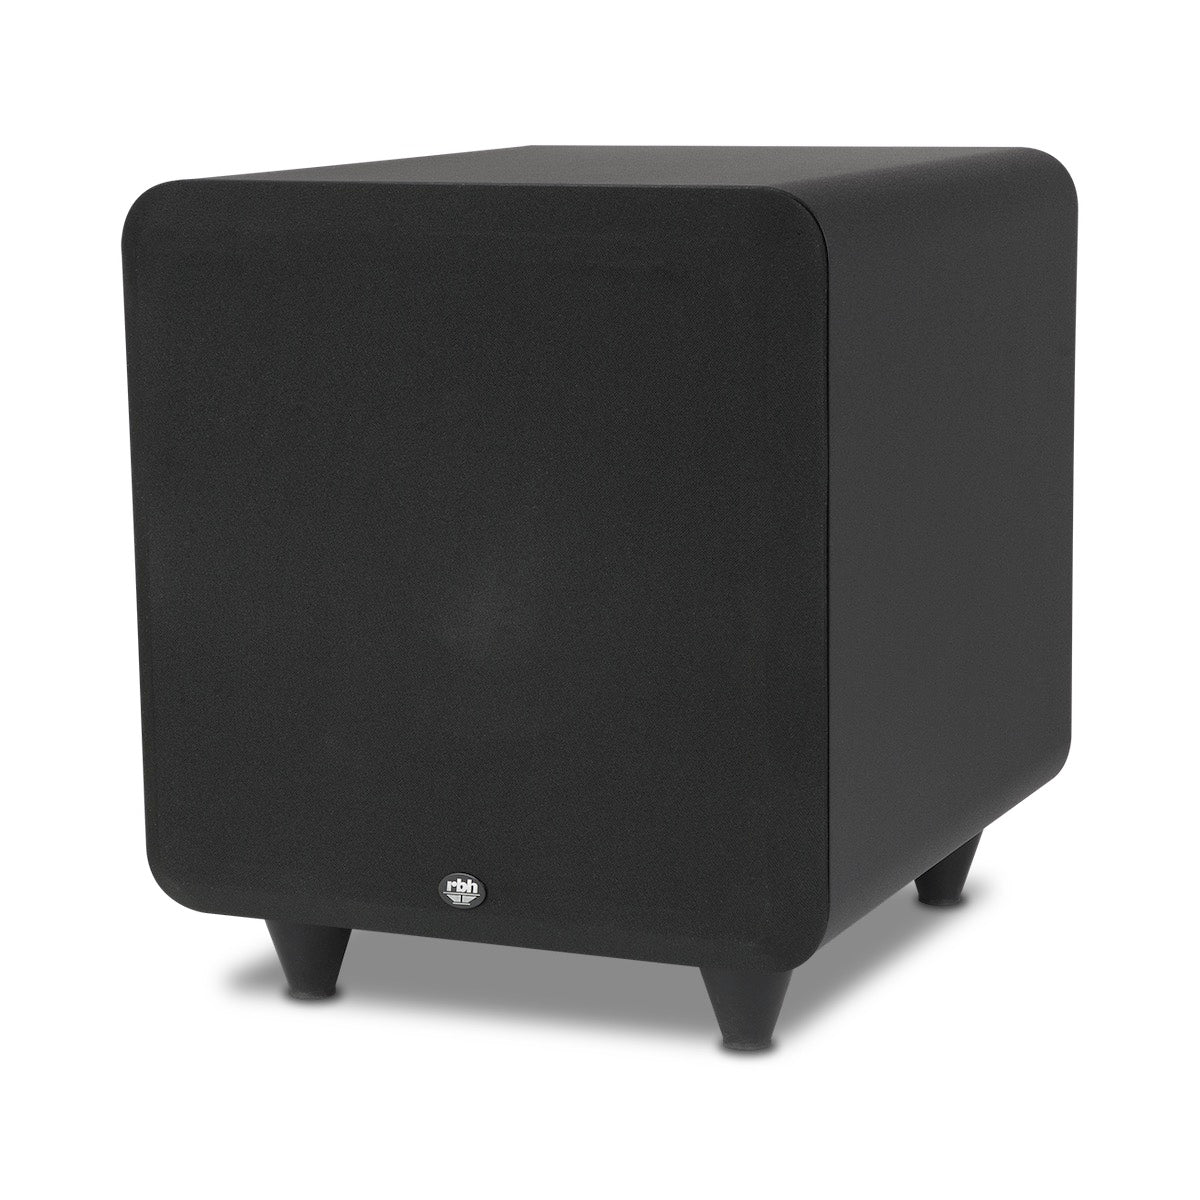 RBH Sound S-8 - Active Subwoofer, RBH Sound, Subwoofer - AVStore.in